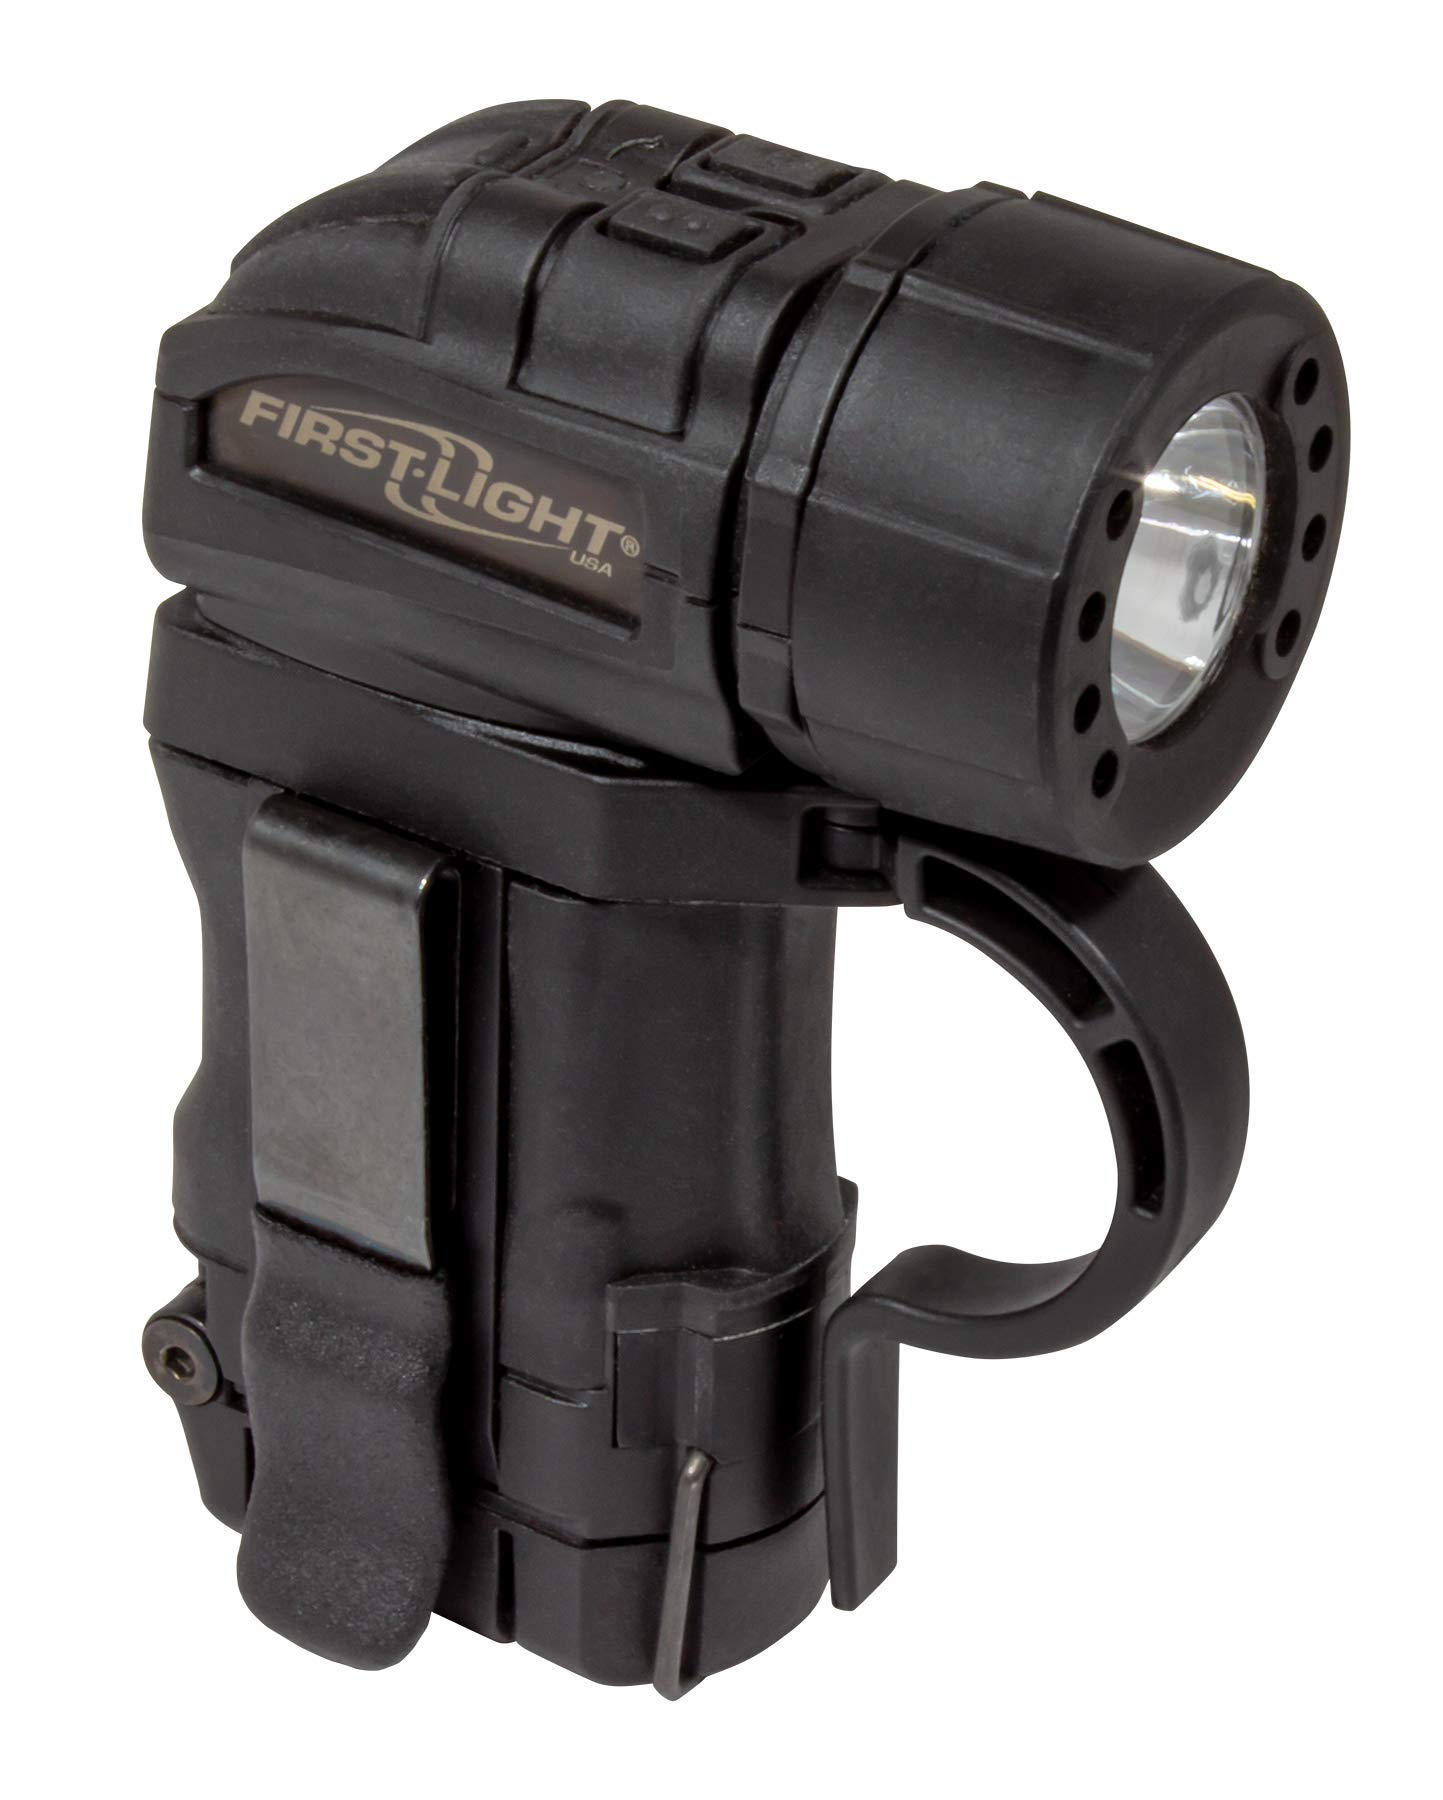 First-Light USA TORQ LE by First-Light USA